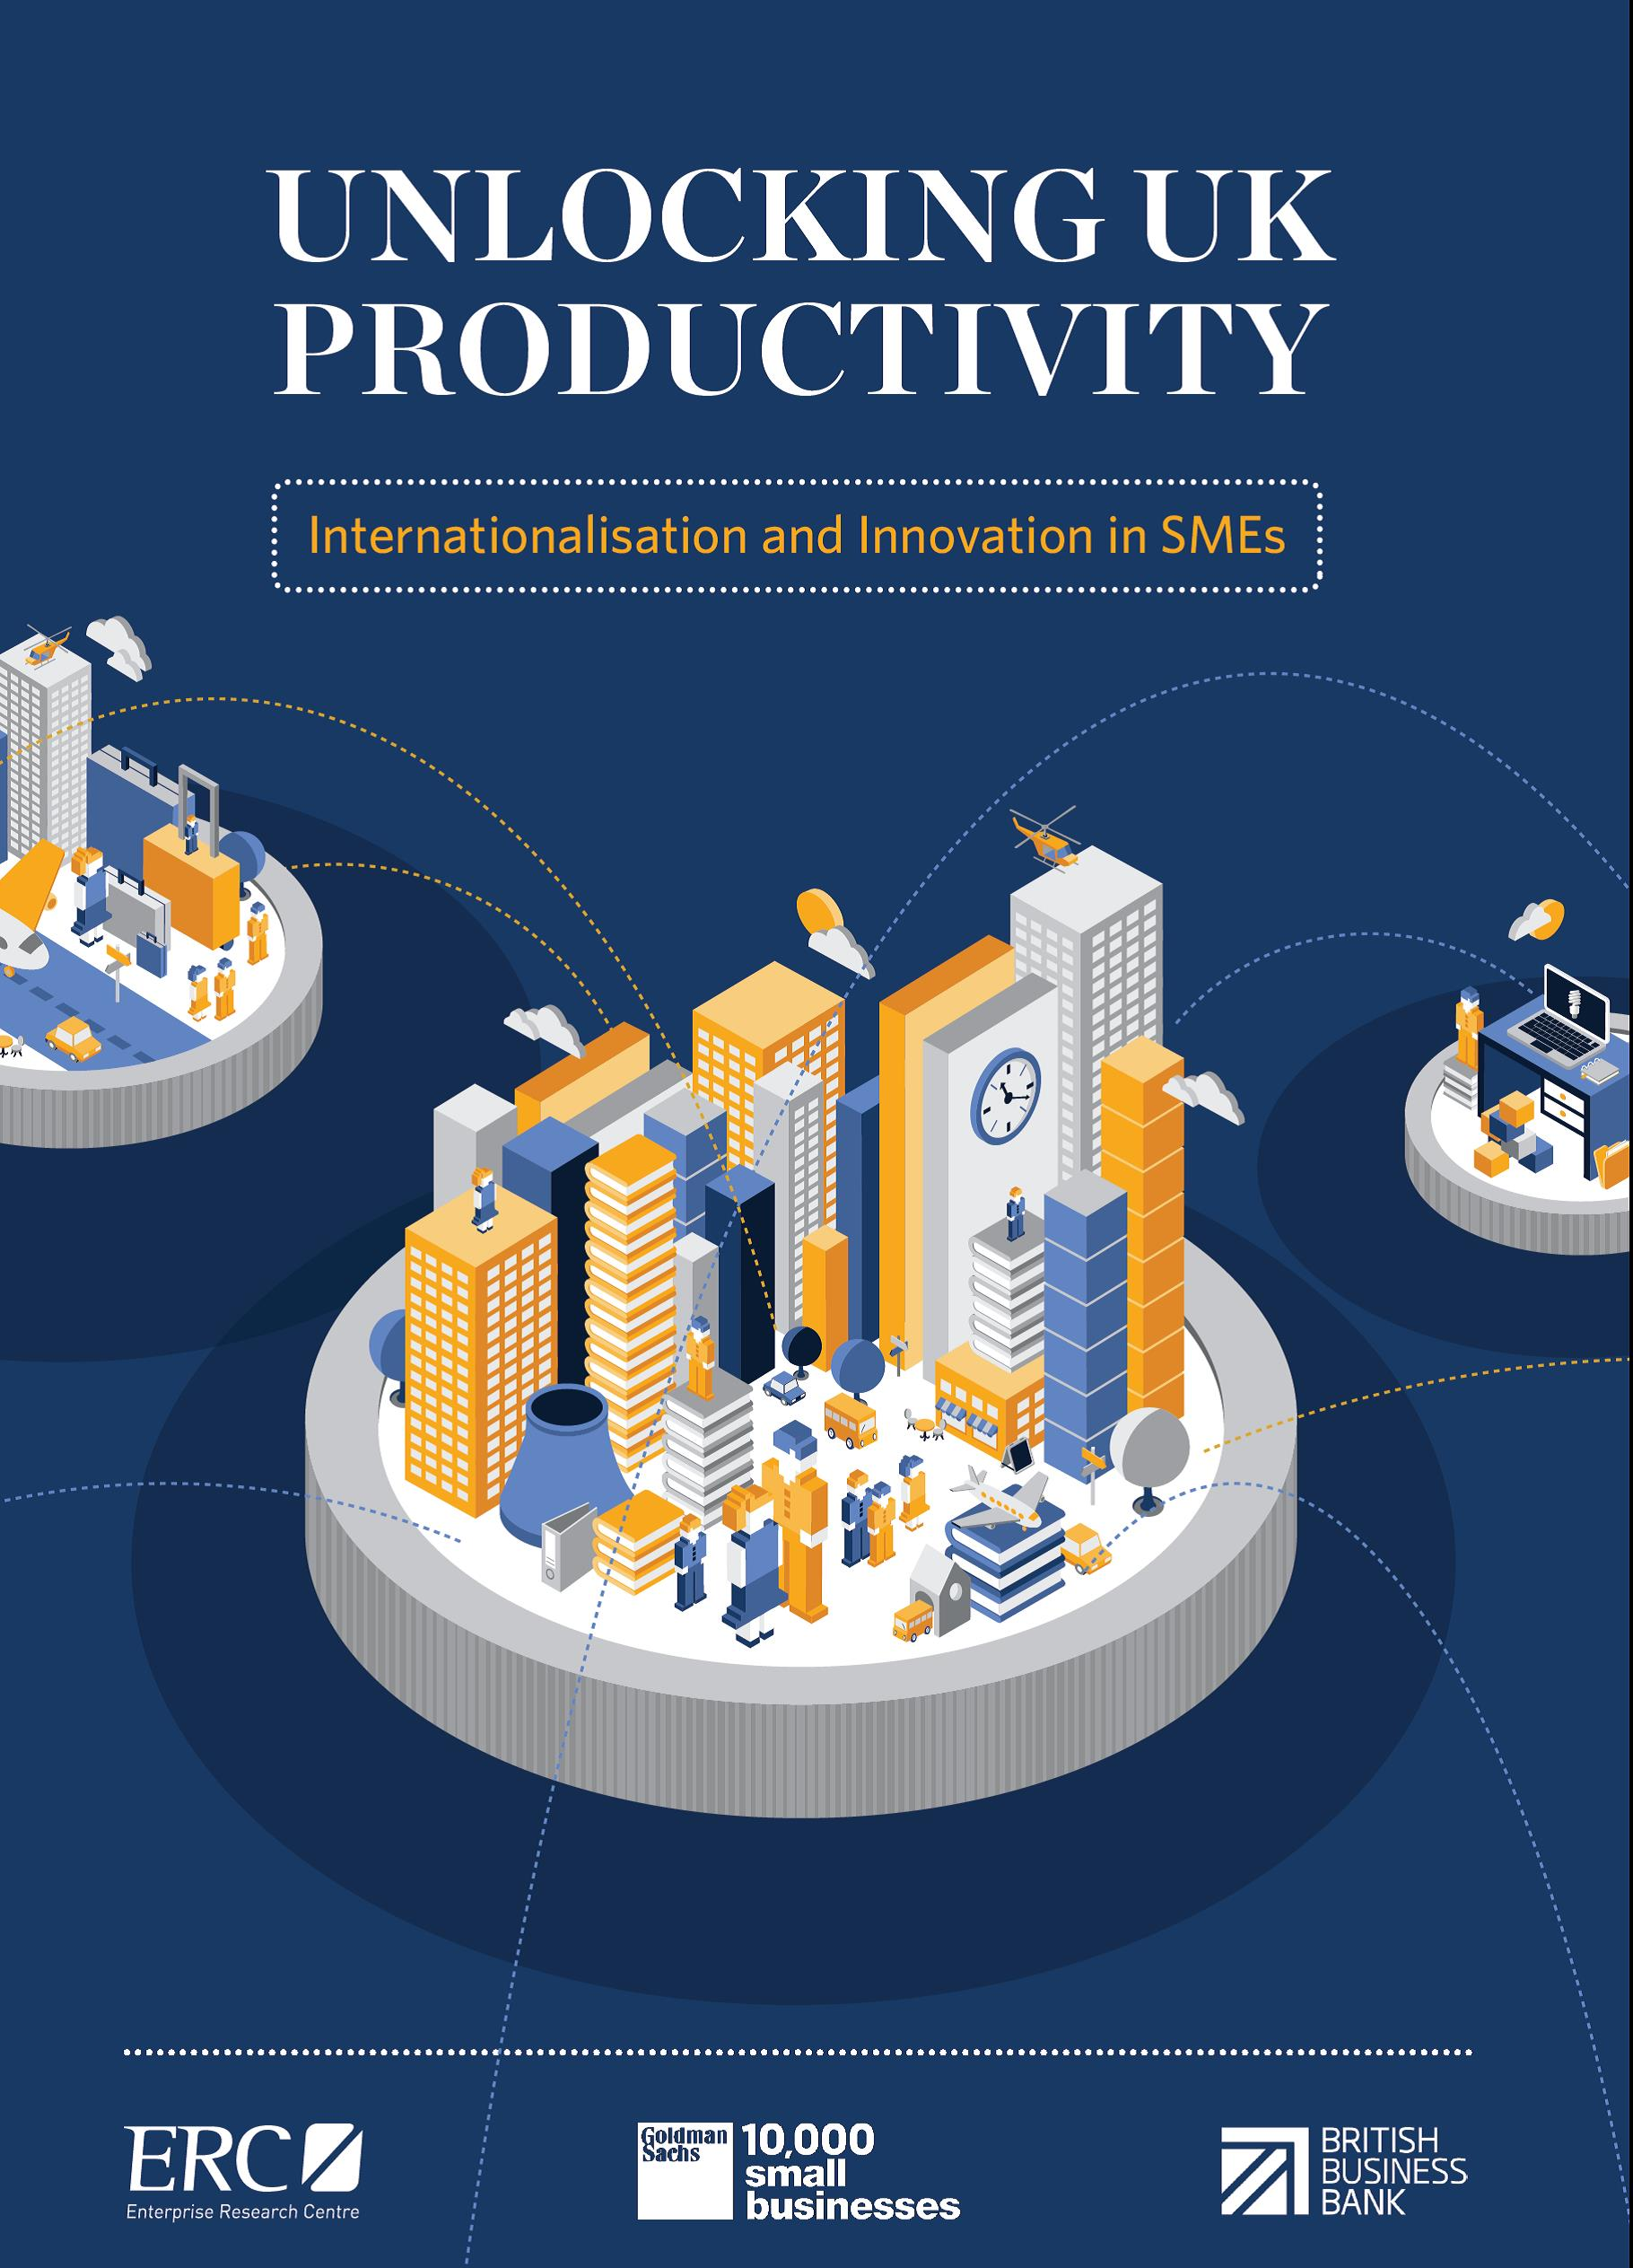 erc enterprise research centre unlocking uk productivity report cover jpeg